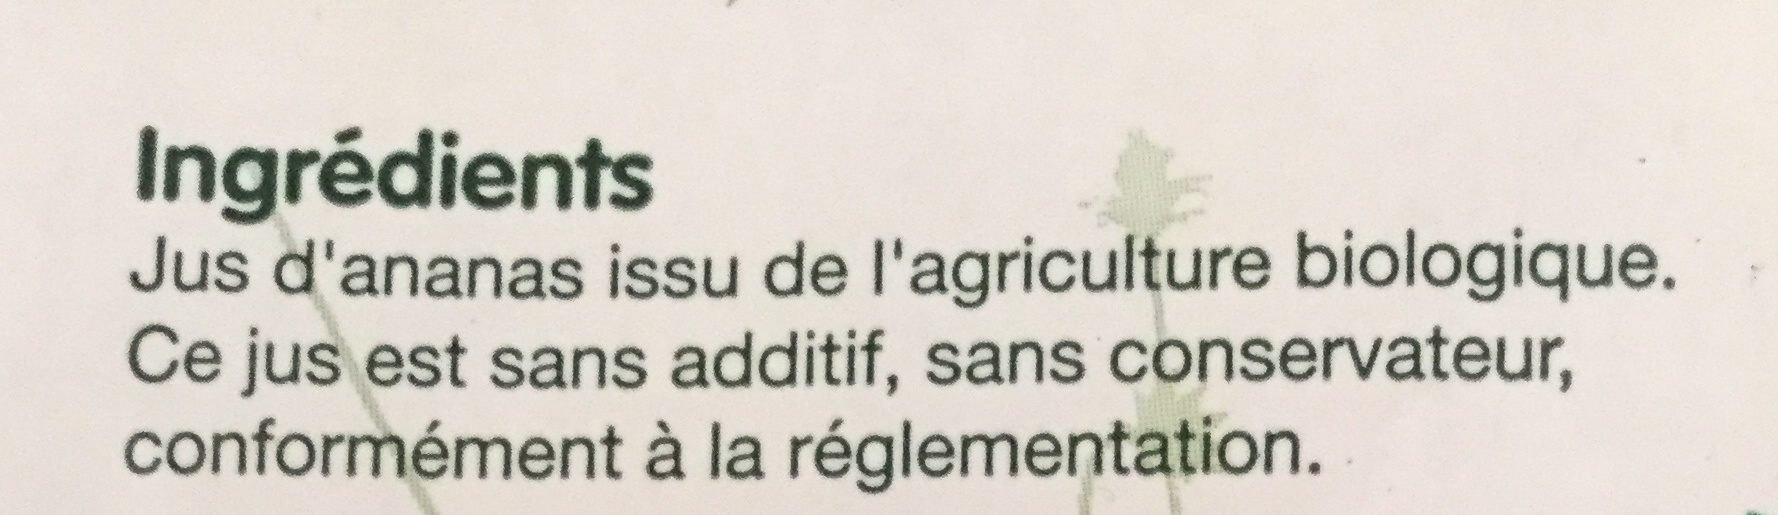 Jus d'ananas - Ingredients